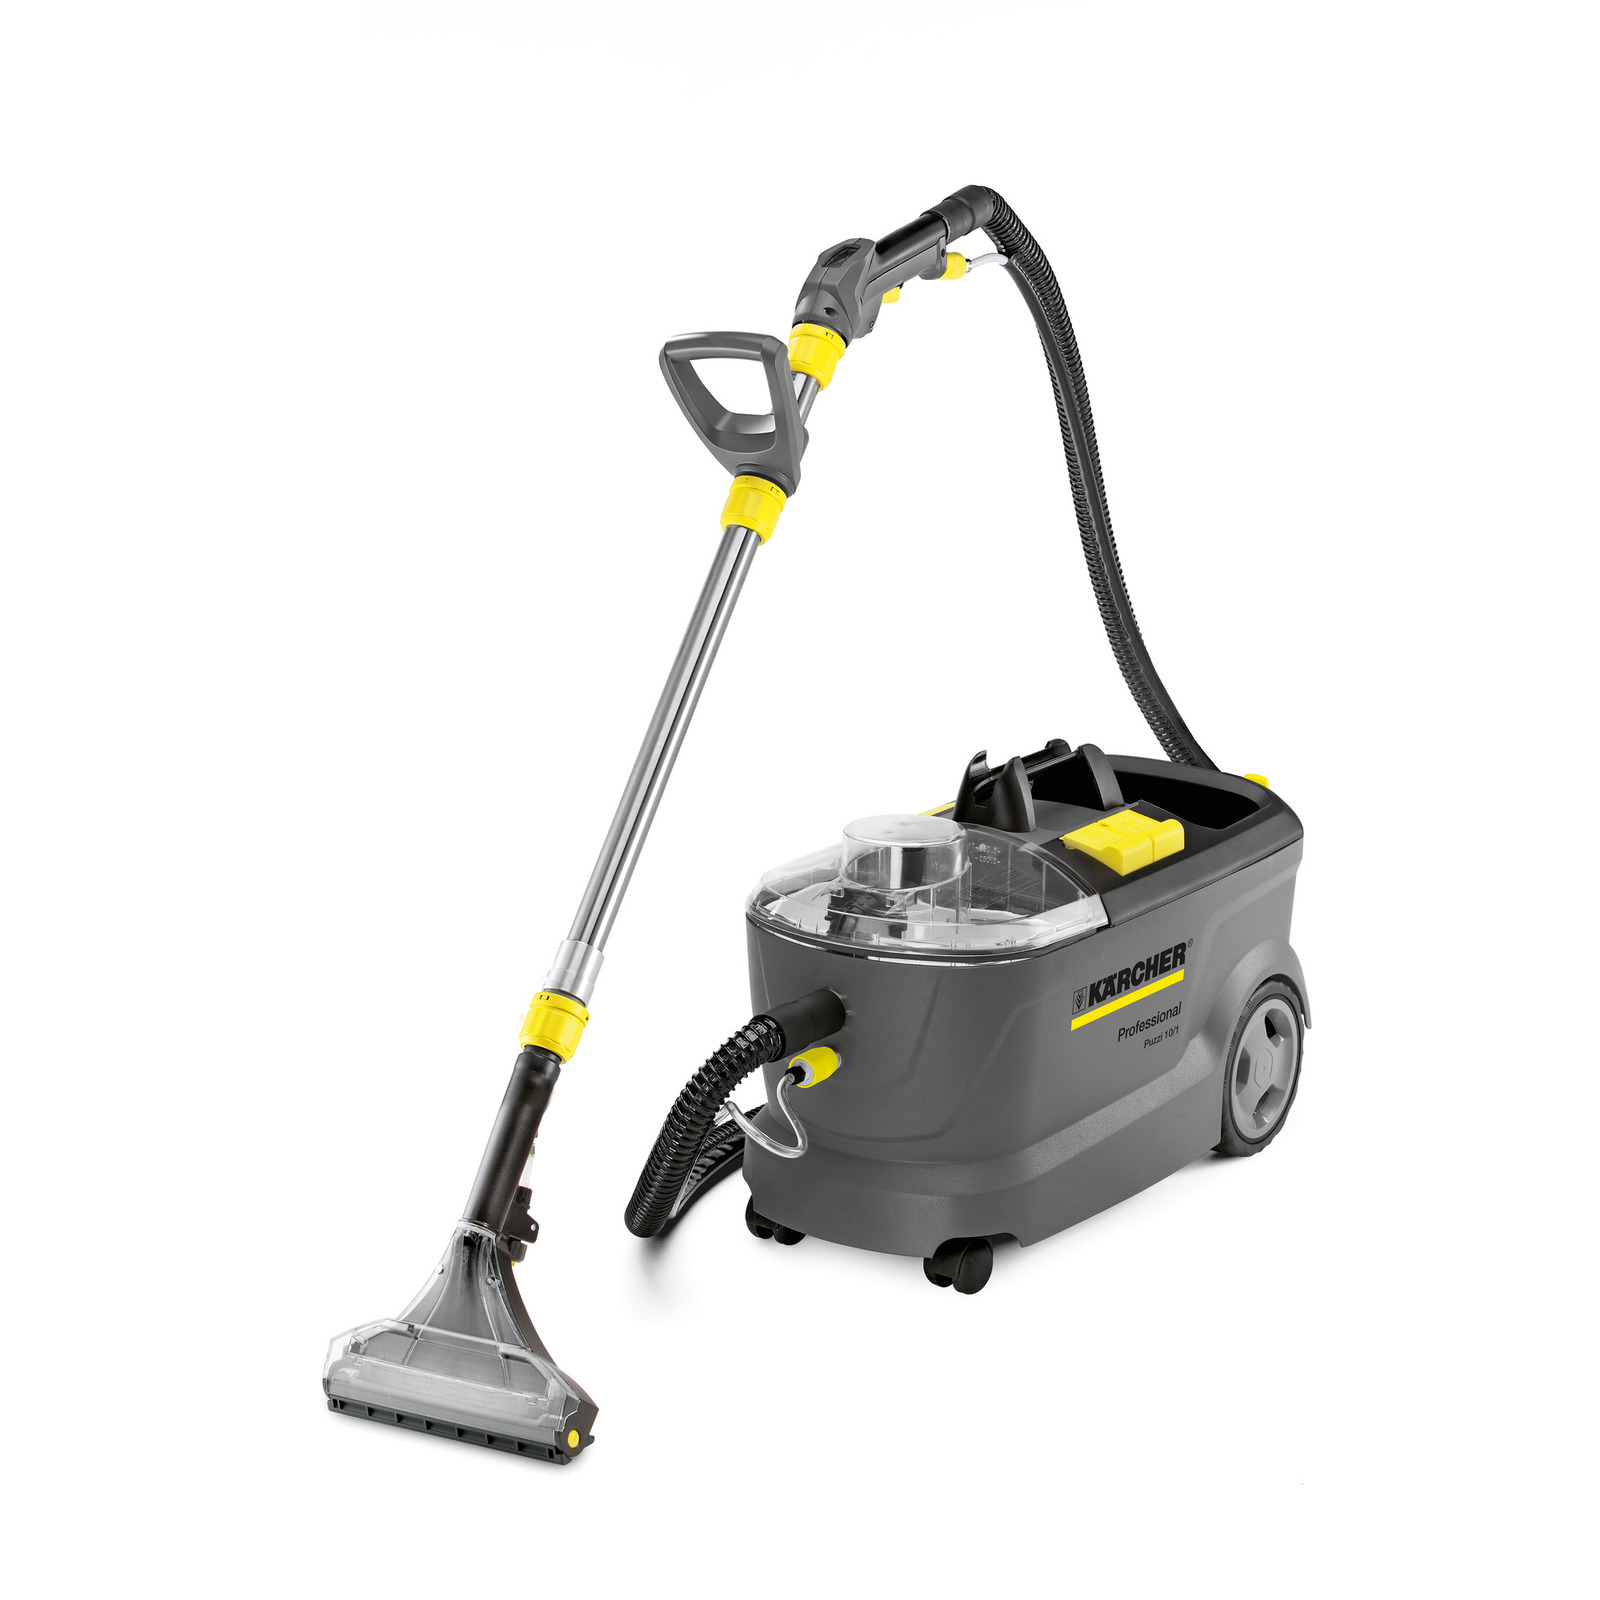 Karcher 1.100-133.0 Puzzi 10/1 Carpet and Upholstery Cleaning Machine 100  2.6 Gal 12 psi 8 ft Hose Set and Dual Tool Set Freight Included